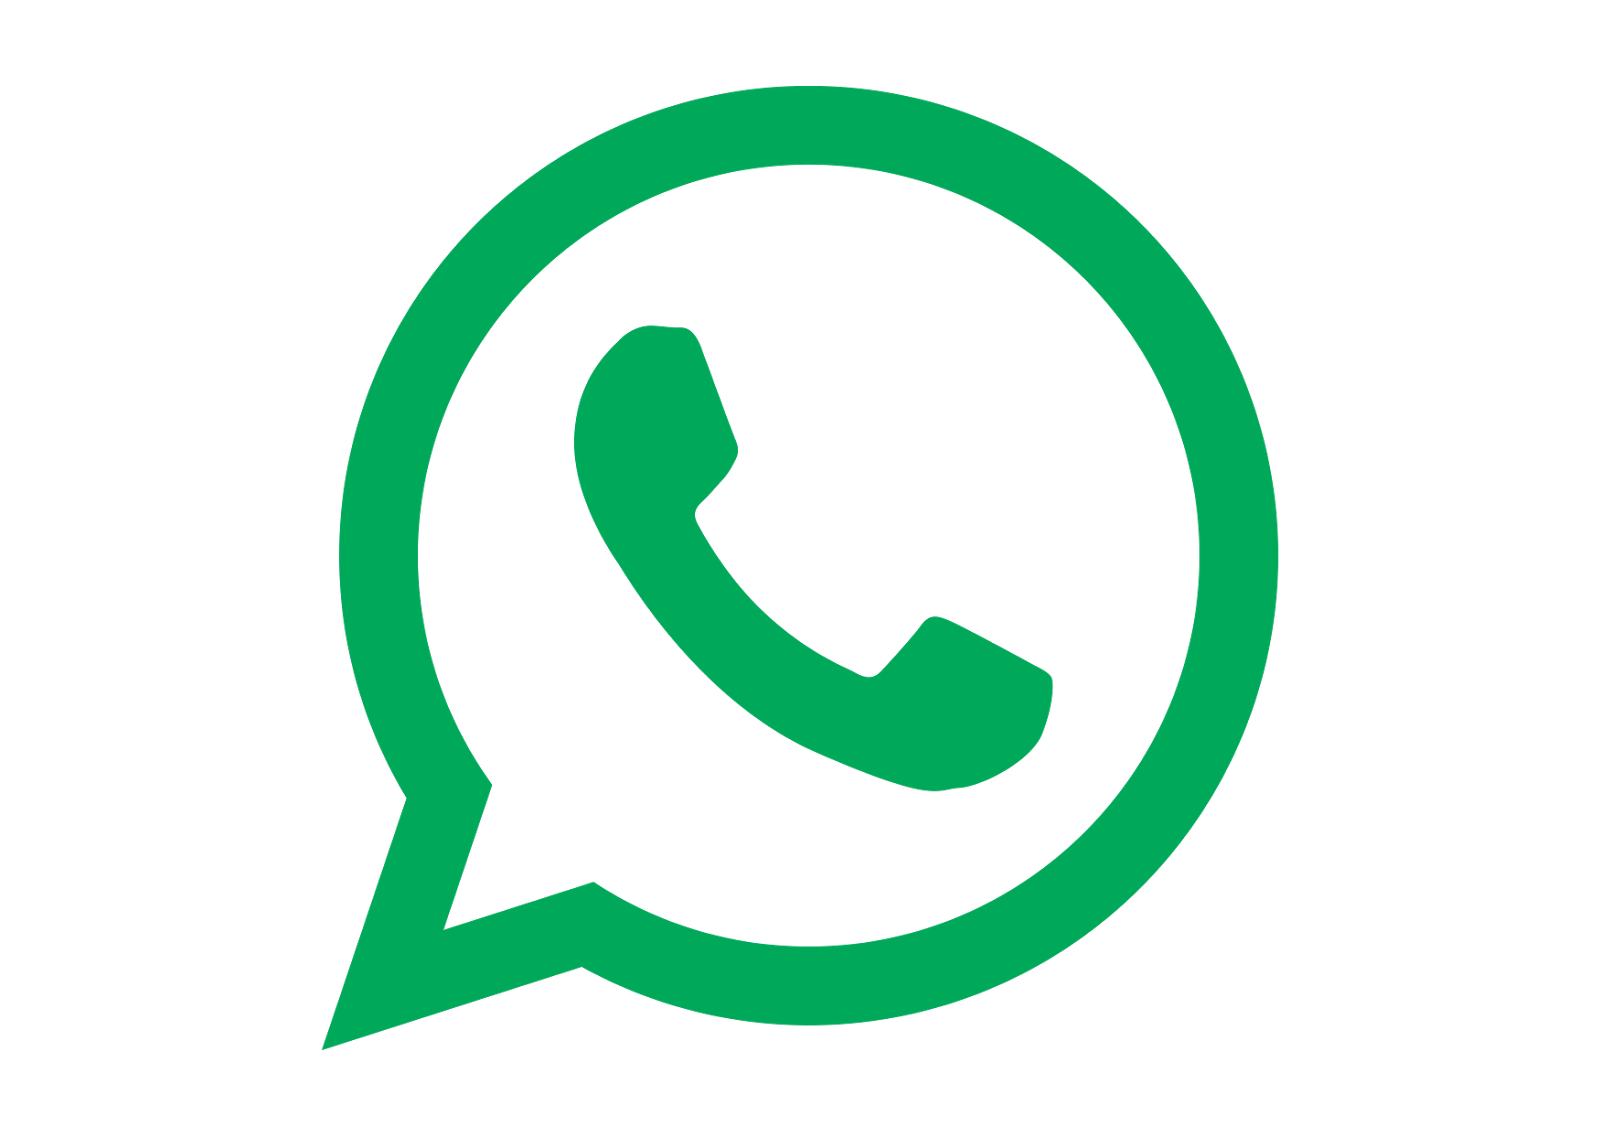 Whatsapp Logo Vector download free